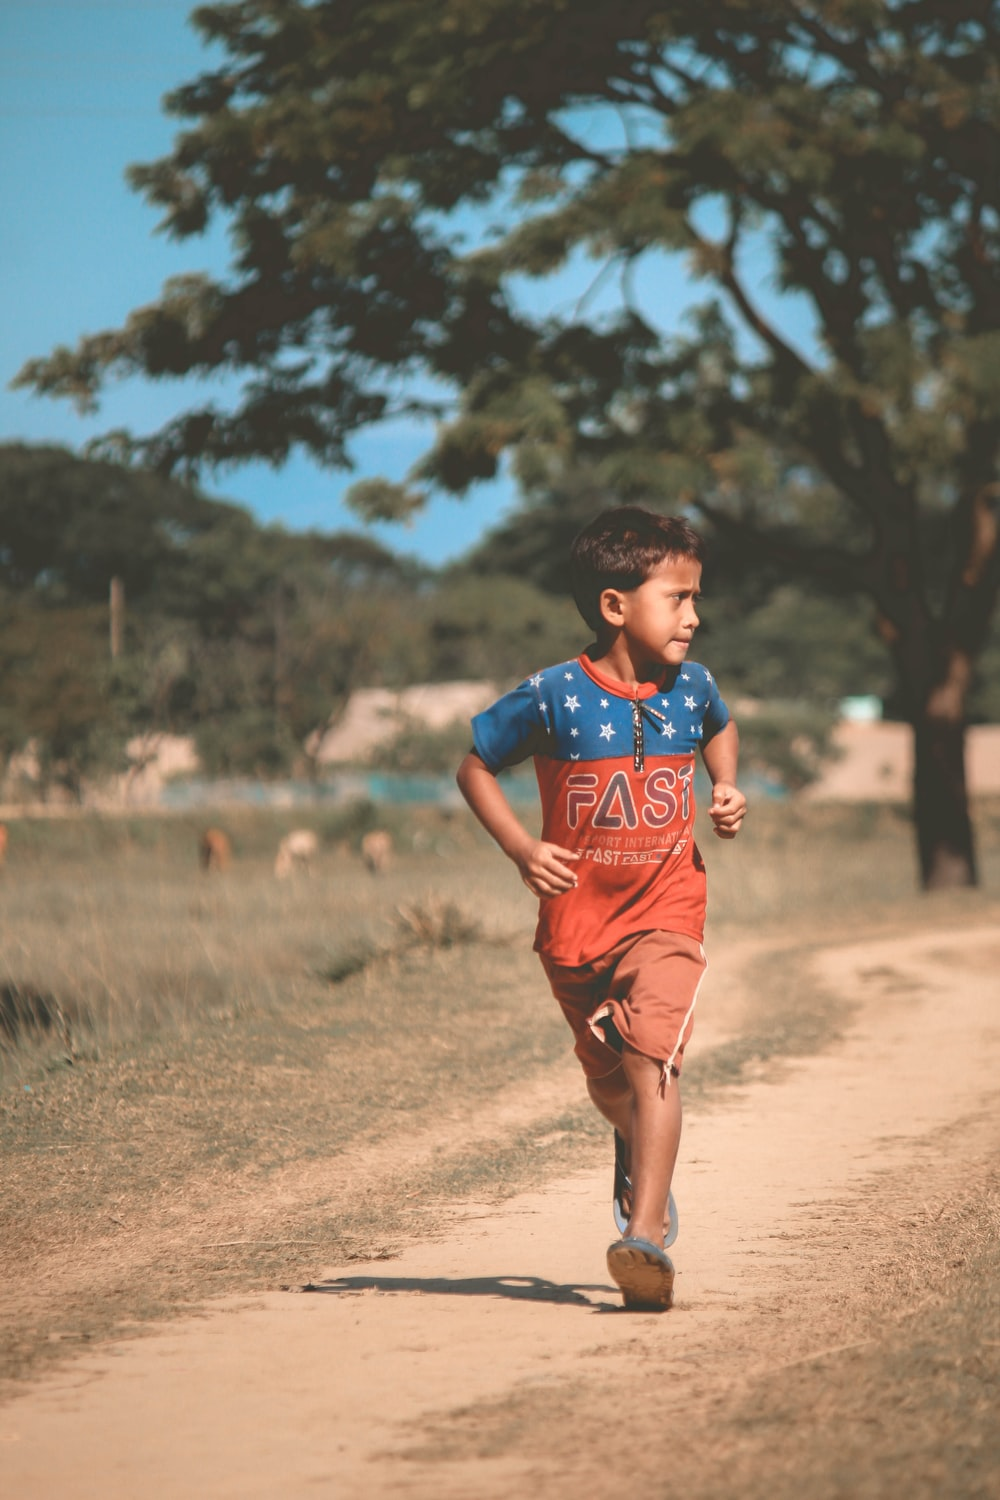 boy in blue and red jersey shirt and brown shorts running on brown field during daytime